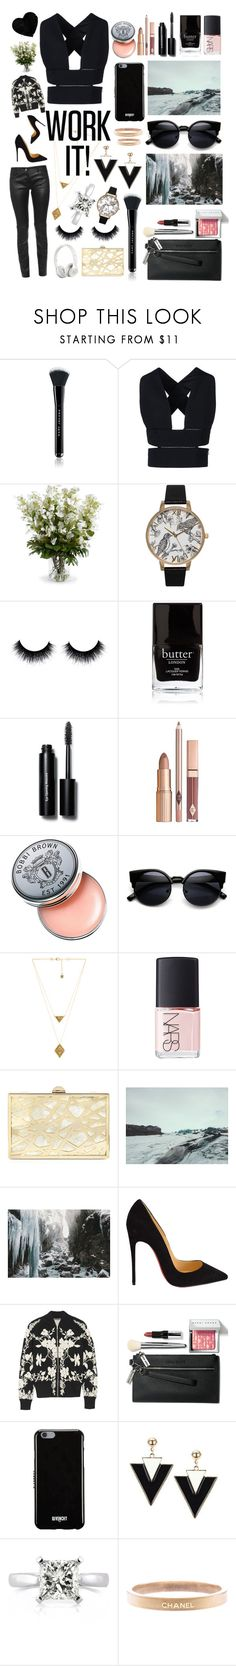 """""""Work it! #104"""" by worldofflowers ❤ liked on Polyvore featuring Marc Jacobs, STELLA McCARTNEY, New Growth Designs, Olivia Burton, Butter London, Bobbi Brown Cosmetics, House of Harlow 1960, NARS Cosmetics, Sondra Roberts and Beats by Dr. Dre"""